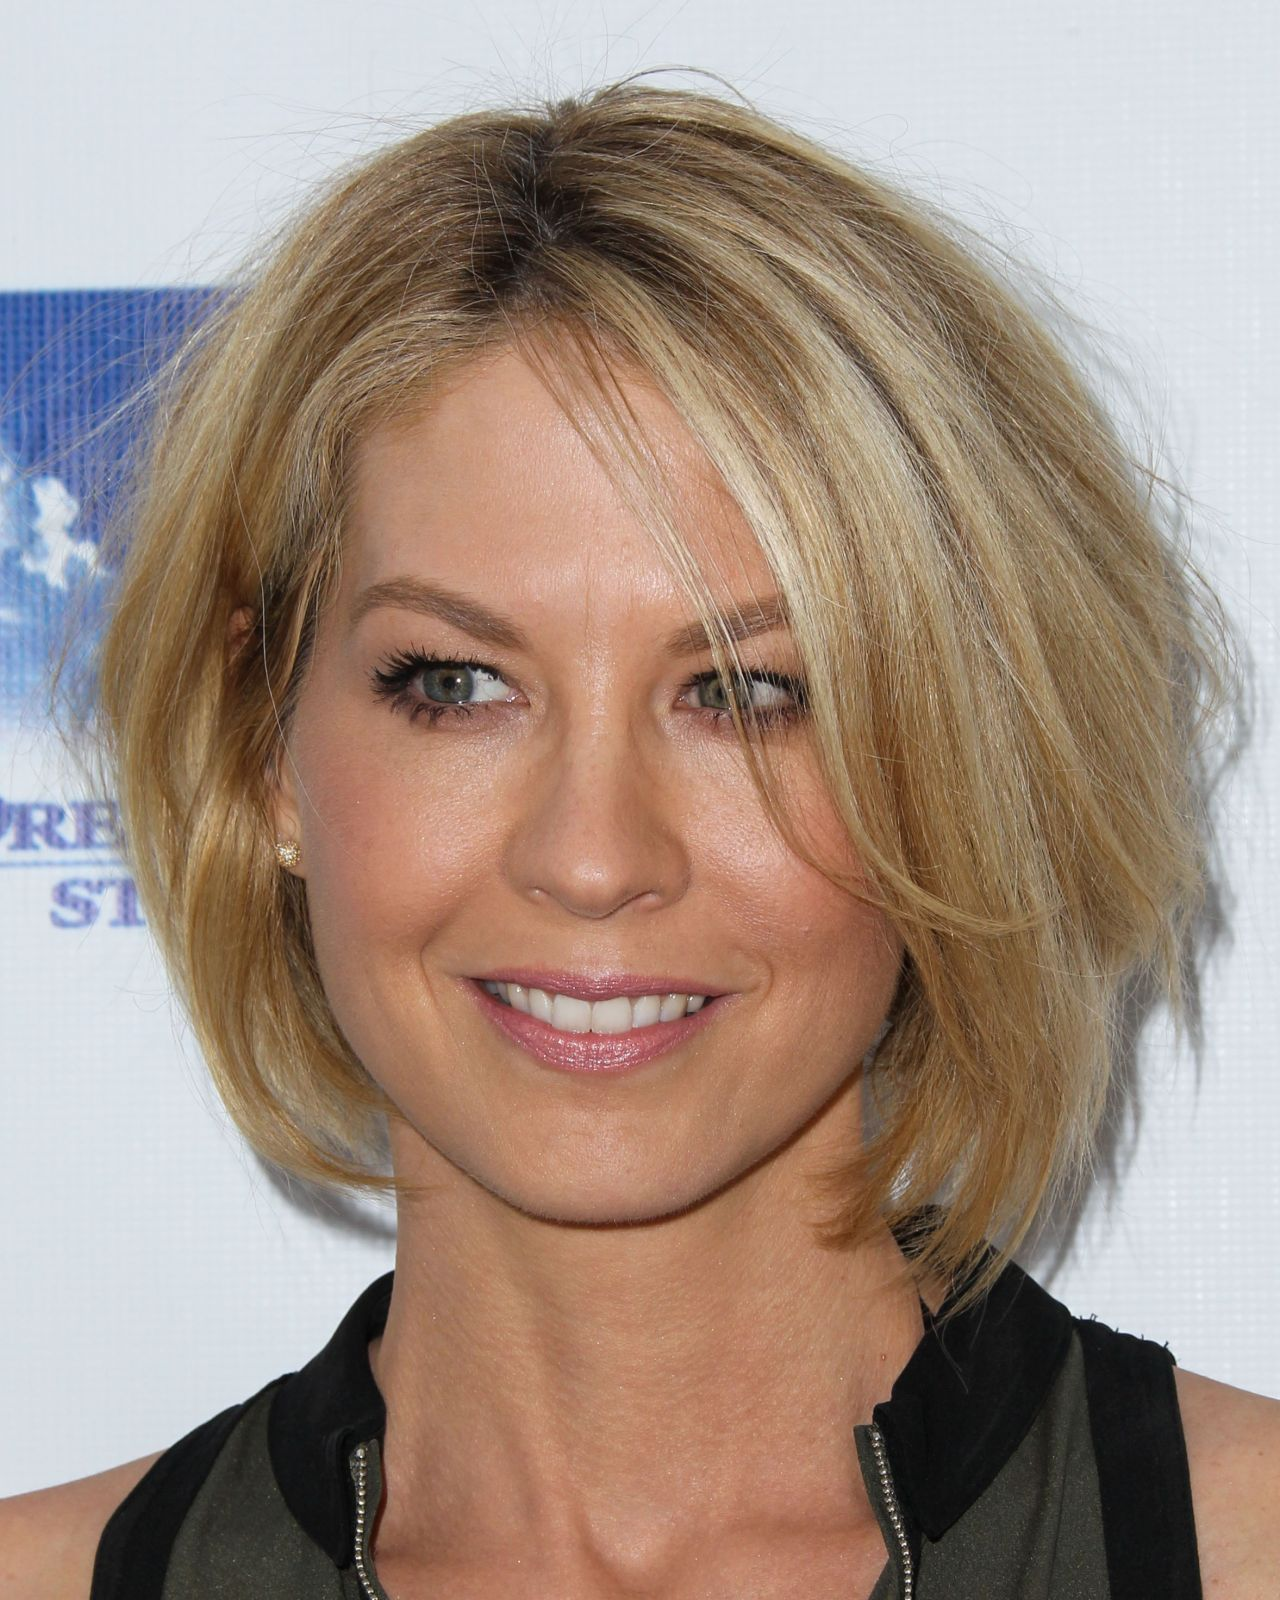 jenna elfman craig fergusonjenna elfman instagram, jenna elfman 2016, jenna elfman craig ferguson, jenna elfman ballet, jenna elfman dancing, jenna elfman, jenna elfman husband, jenna elfman wiki, jenna elfman 2014, jenna elfman now, jenna elfman hair, jenna elfman short hair, jenna elfman imdb, jenna elfman net worth, jenna elfman bikini, jenna elfman height weight, jenna elfman measurements